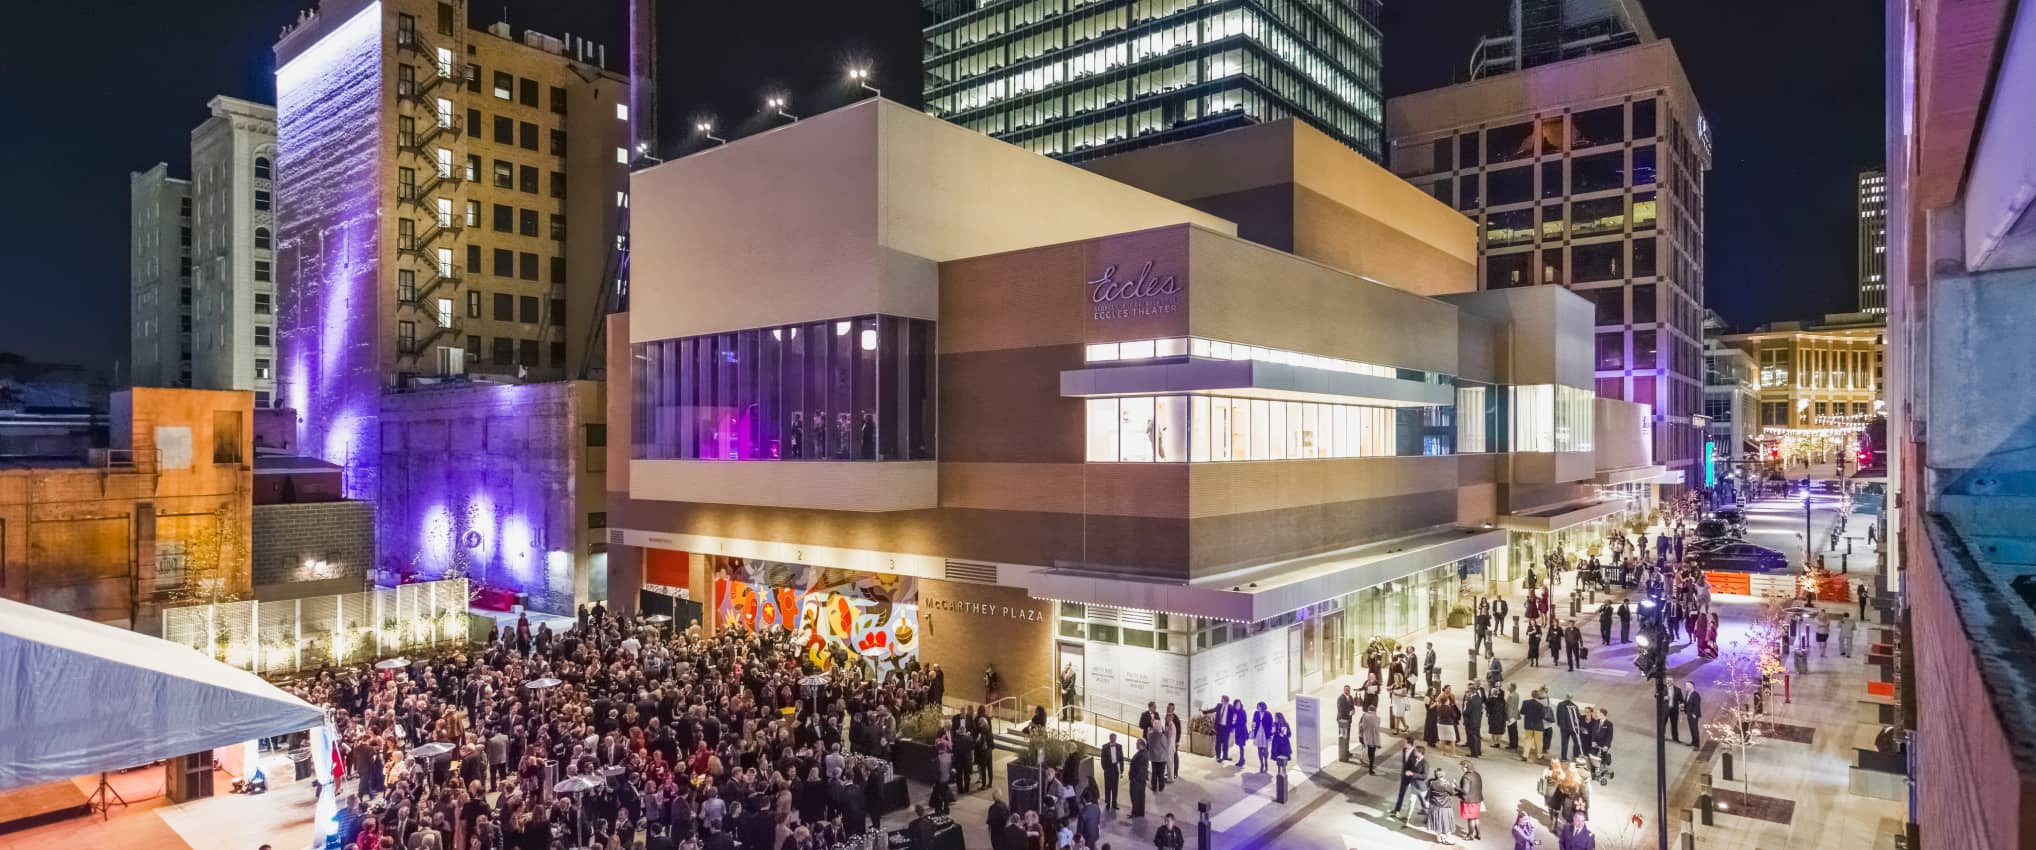 Eccles Theater: Delivering Encore Performances, on Stage and Off